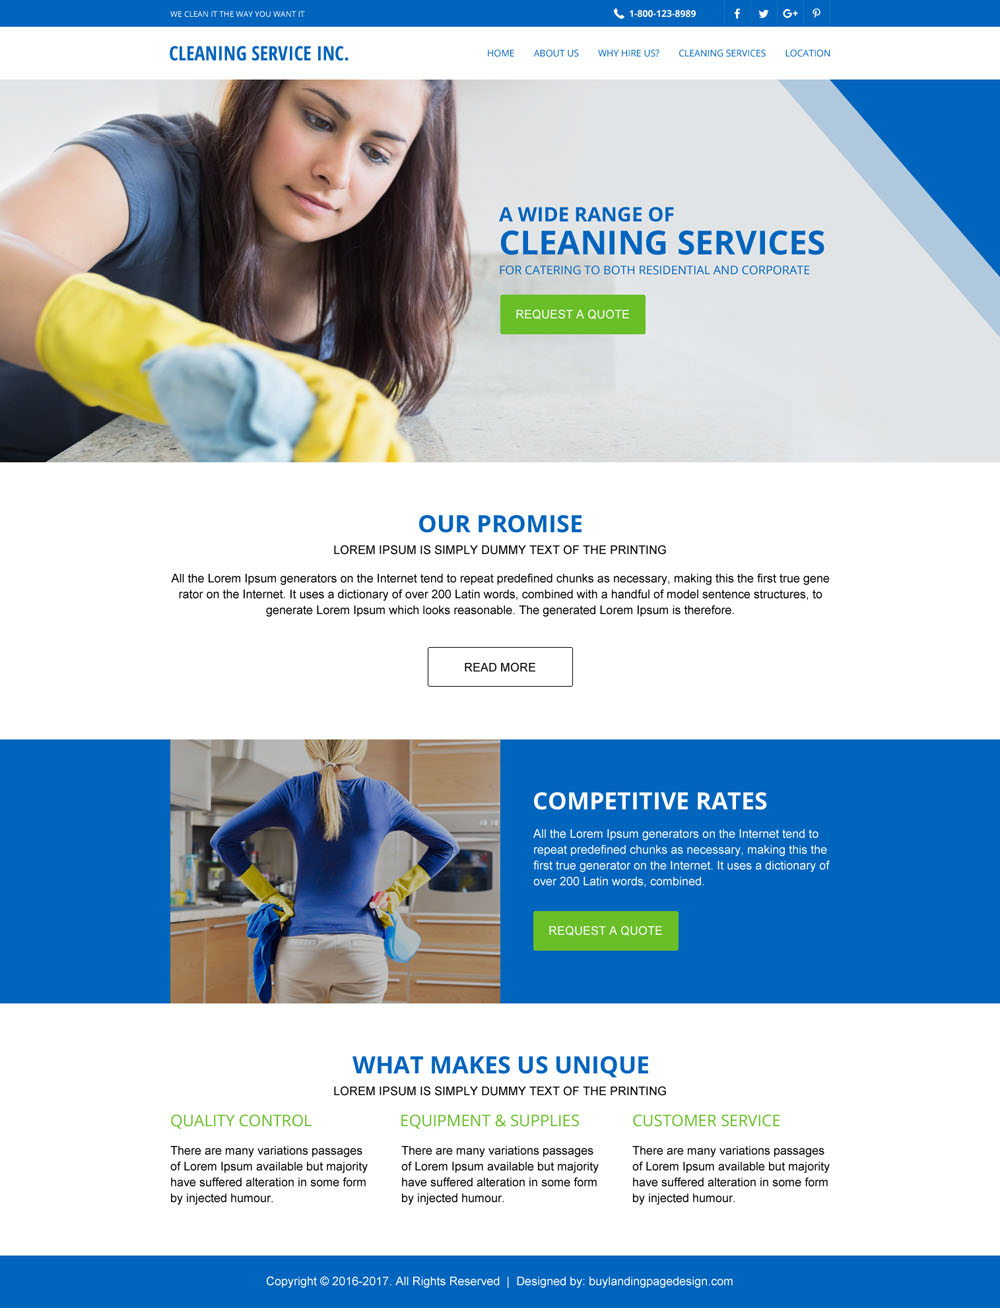 cleaning-service-html-website-template-to-create-your-beautiful-cleaning-service-website-001-index